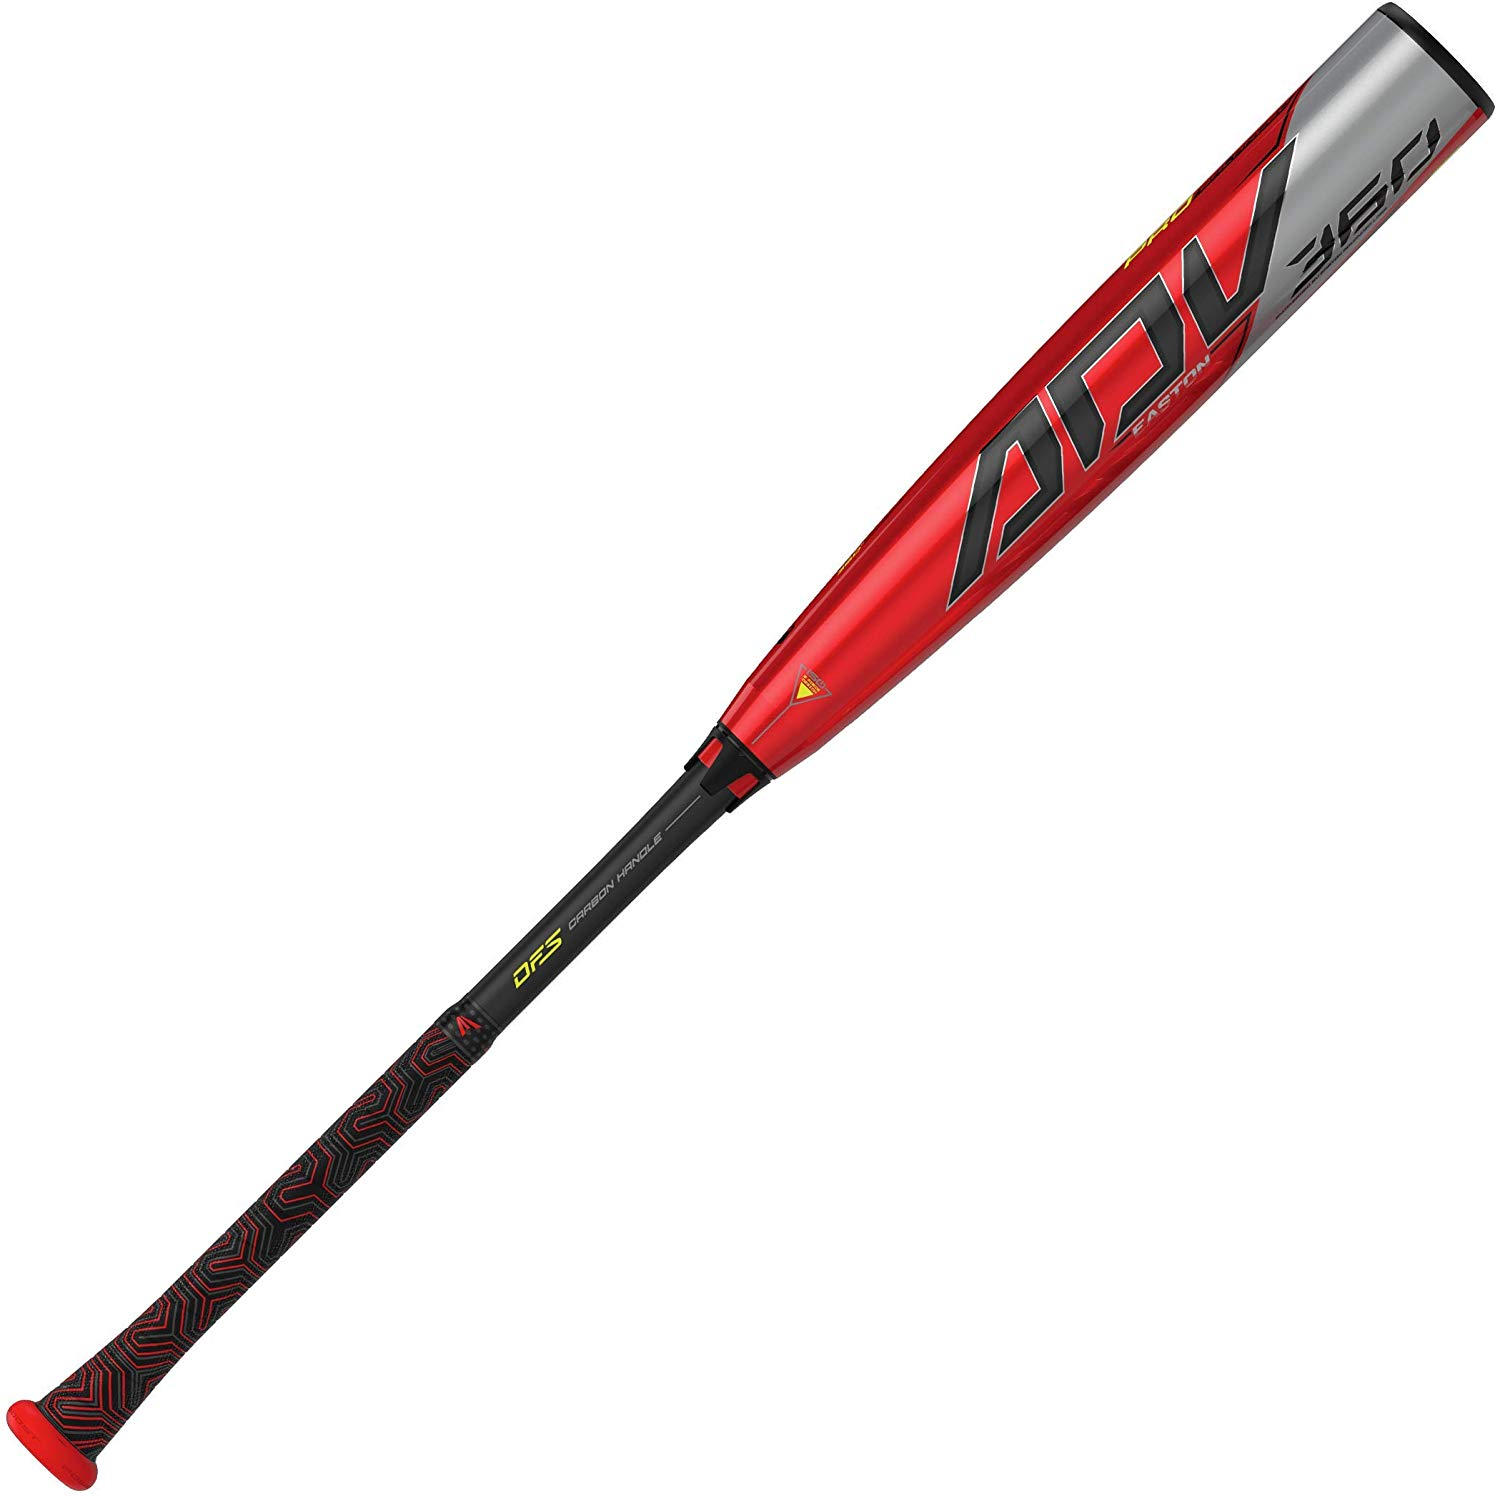 easton-adv-360-3-bbcor-2020-baseball-bat-33-inch-30-oz BB20ADV-3330  628412266151 Launch Comp - Launch Composite Technology combined with 360 Engineering for